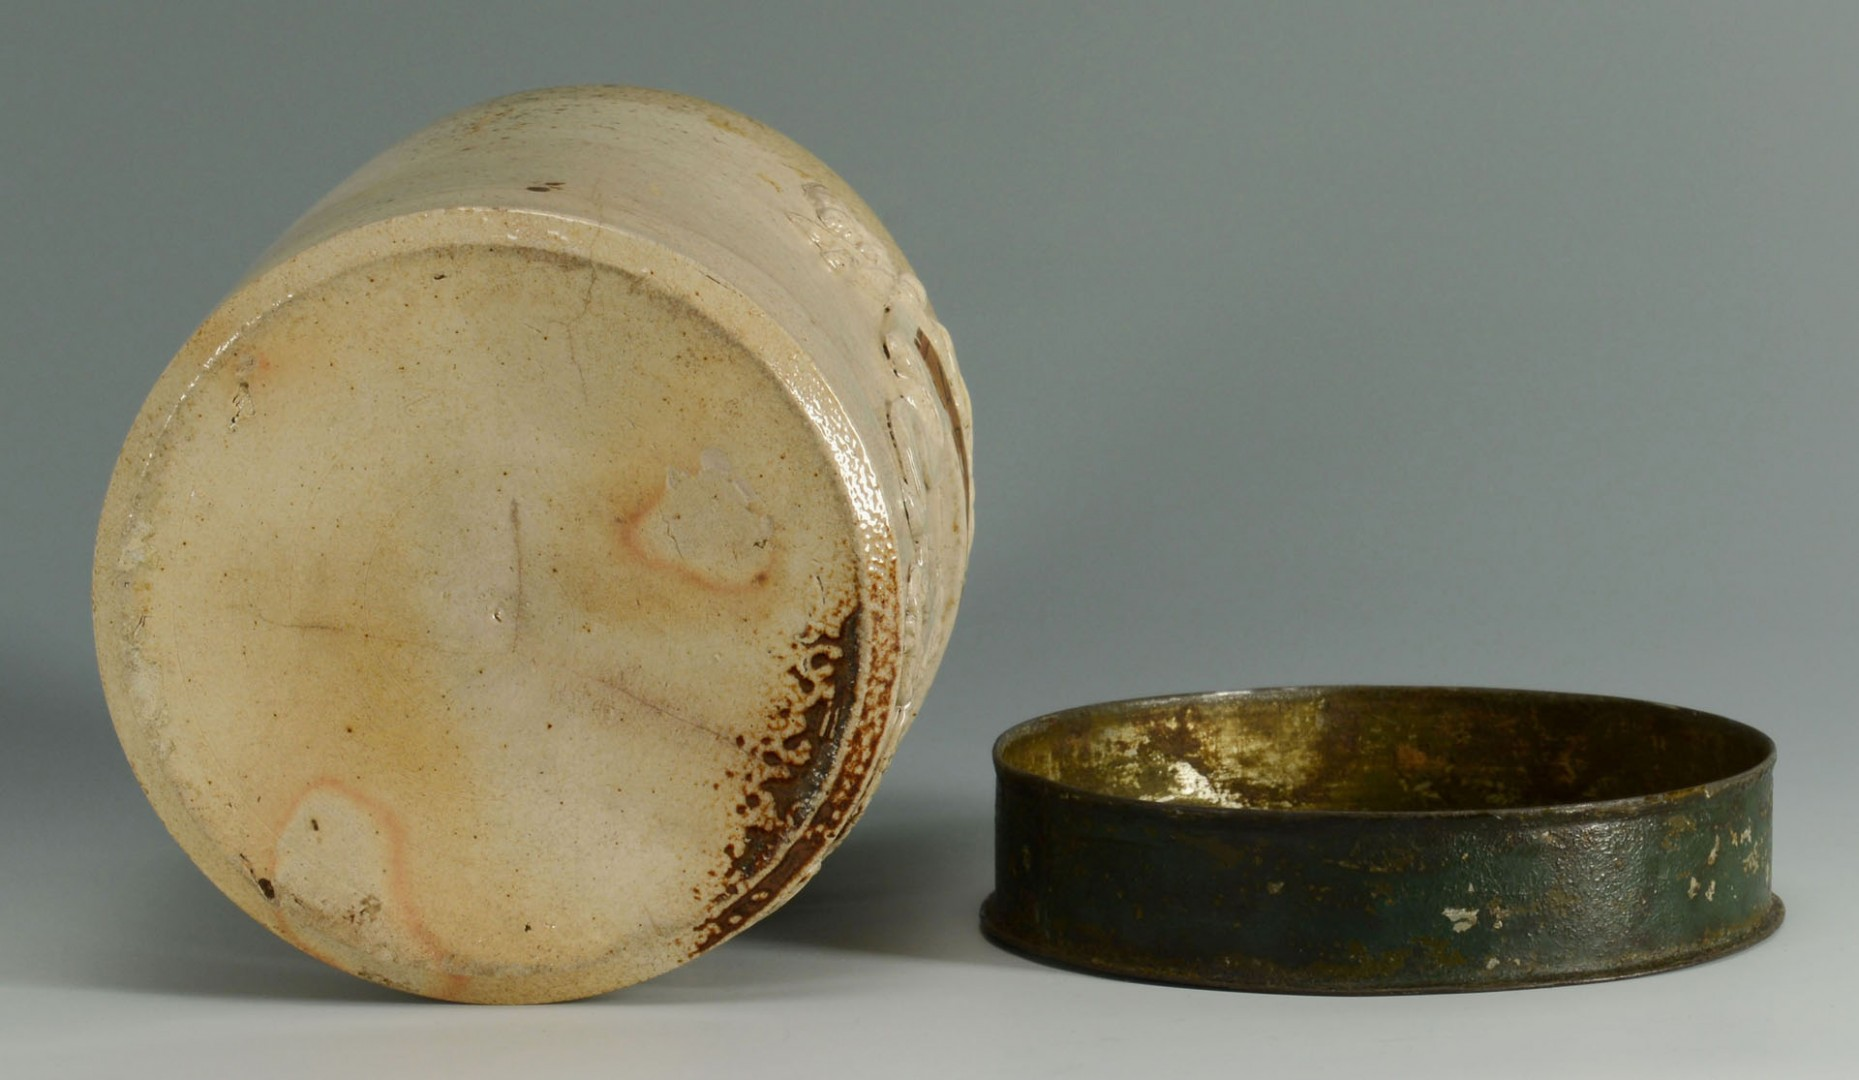 Lot 447: Stoneware Apothecary Jar and French Sardine Box